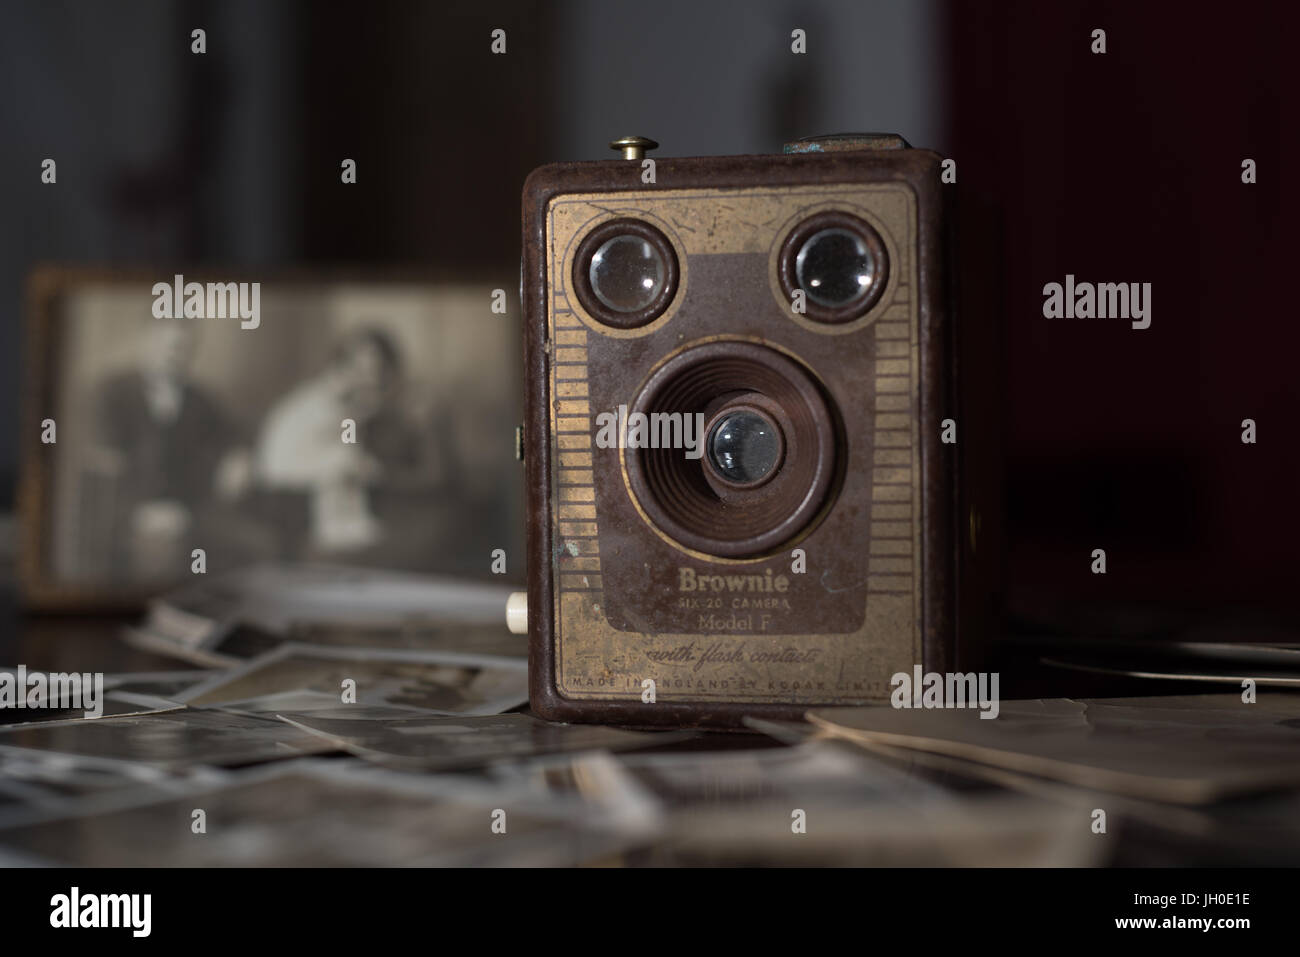 Old Kodak brownie camera with old black and white family